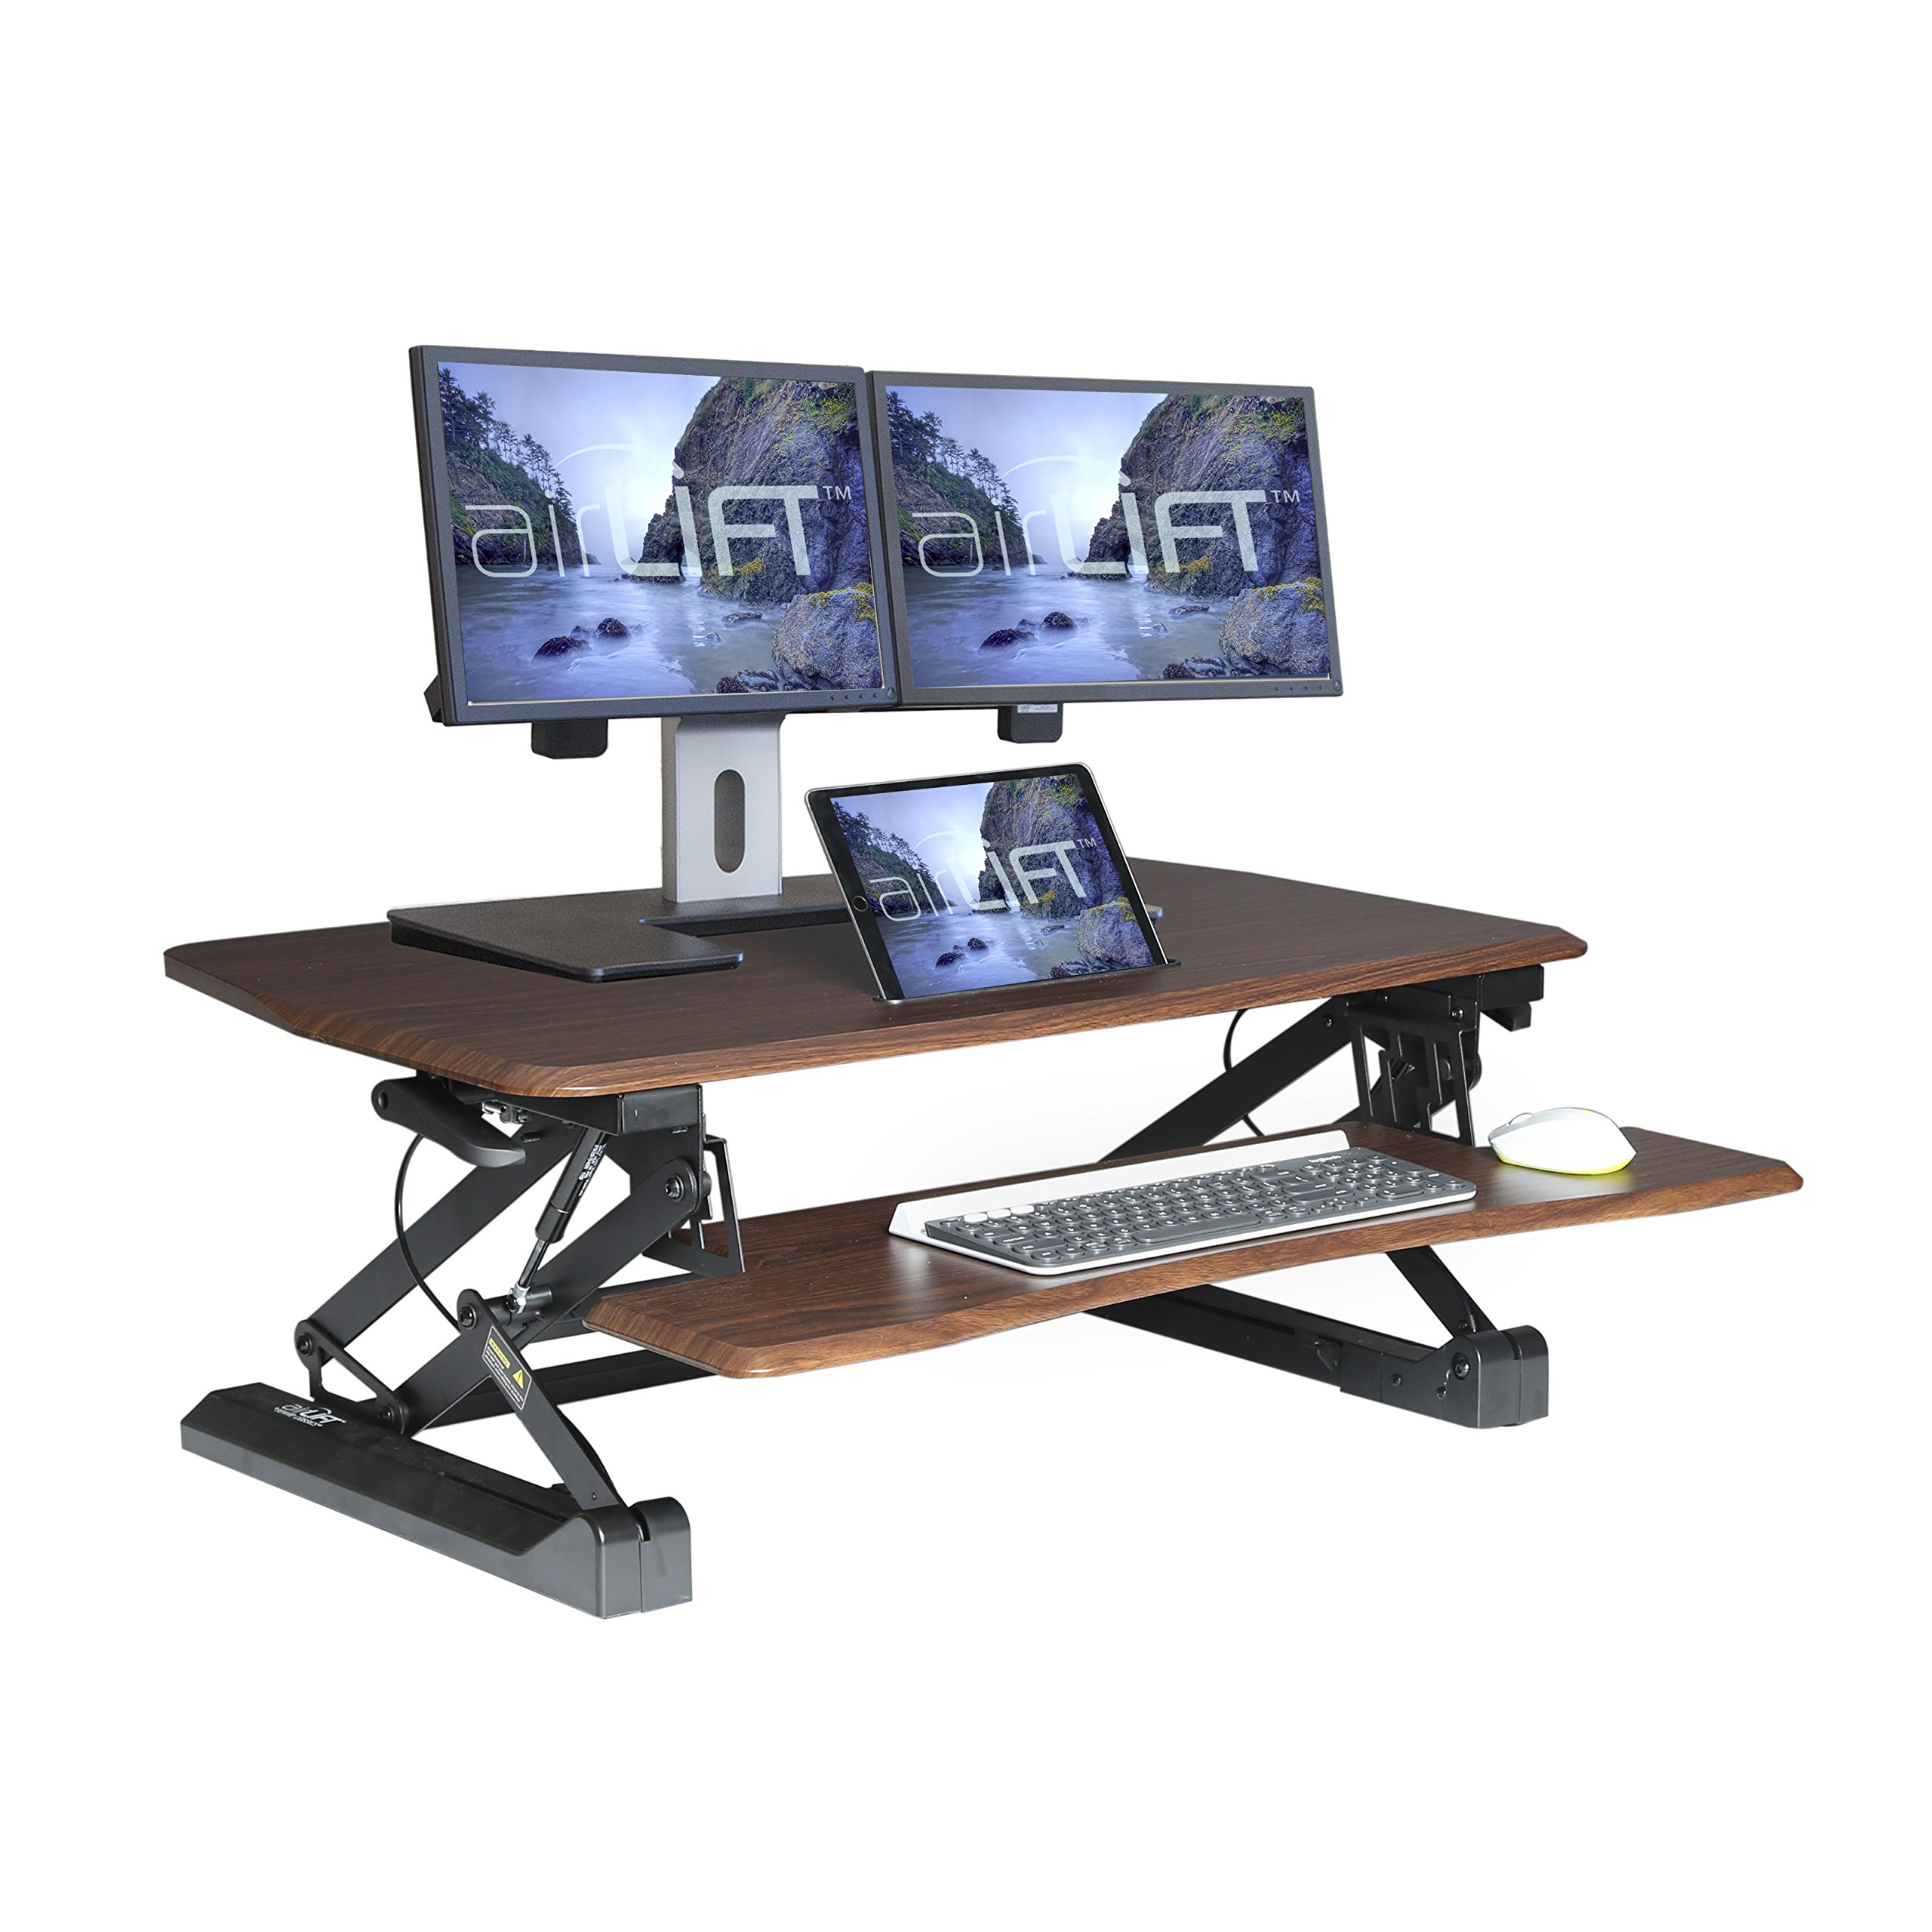 Seville Classics AIRLIFT 36'' Gas-Spring Height Adjustable Standing Desk Converter Workstation Ergonomic Dual Monitor Riser with Keyboard Tray and Phone/Tablet Holder, Walnut